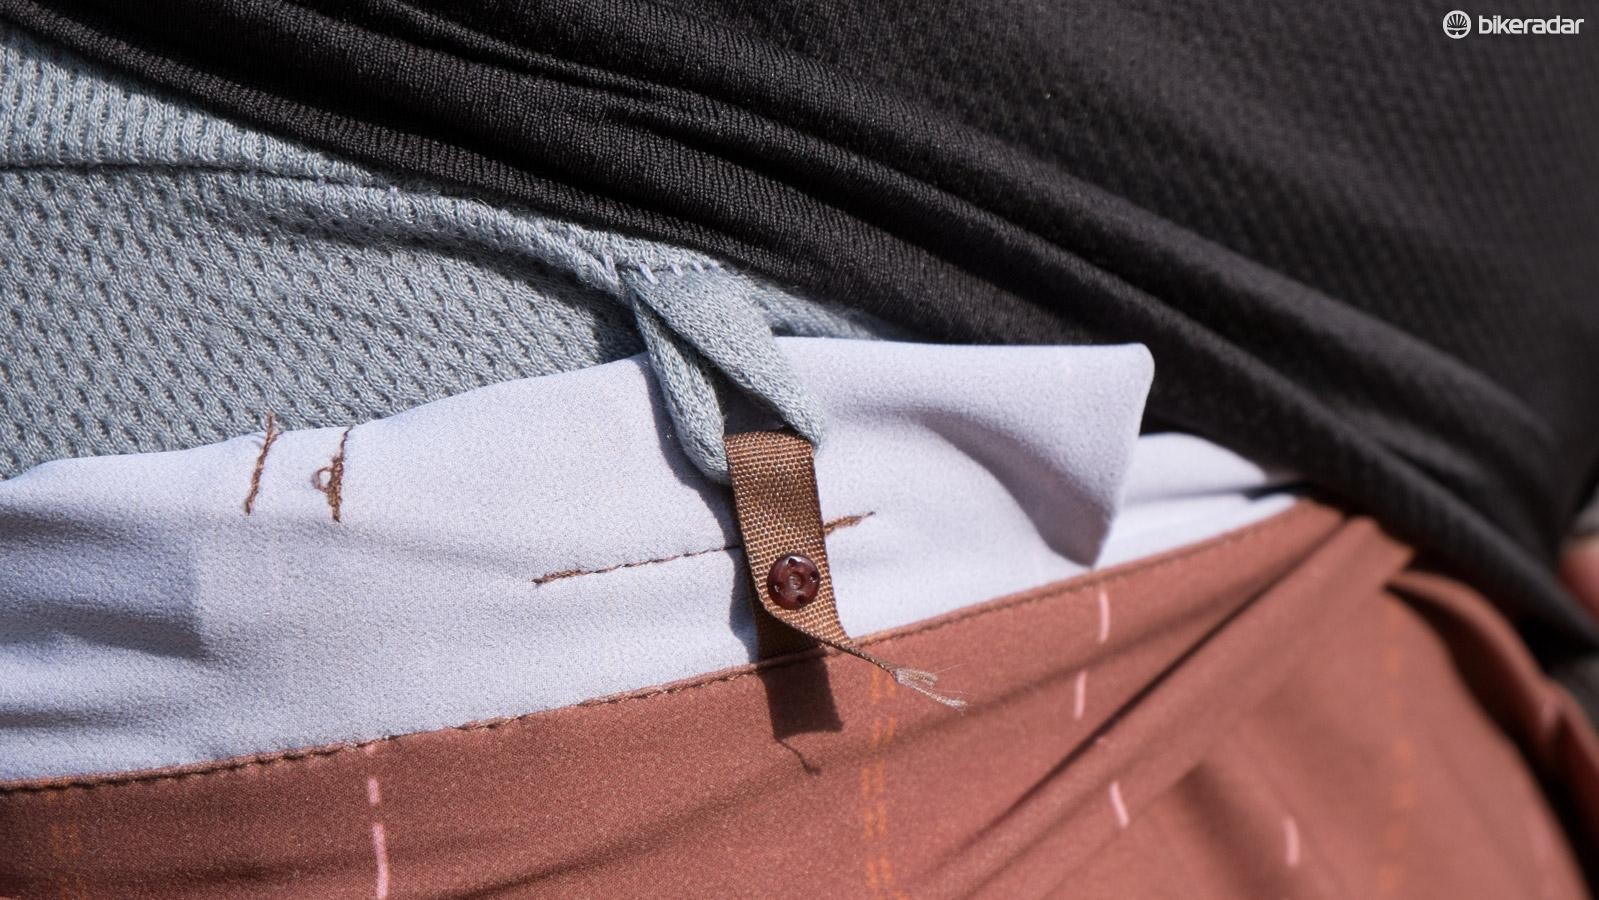 The mountain bike specific bibs snap into the shorts with these tiny attachments